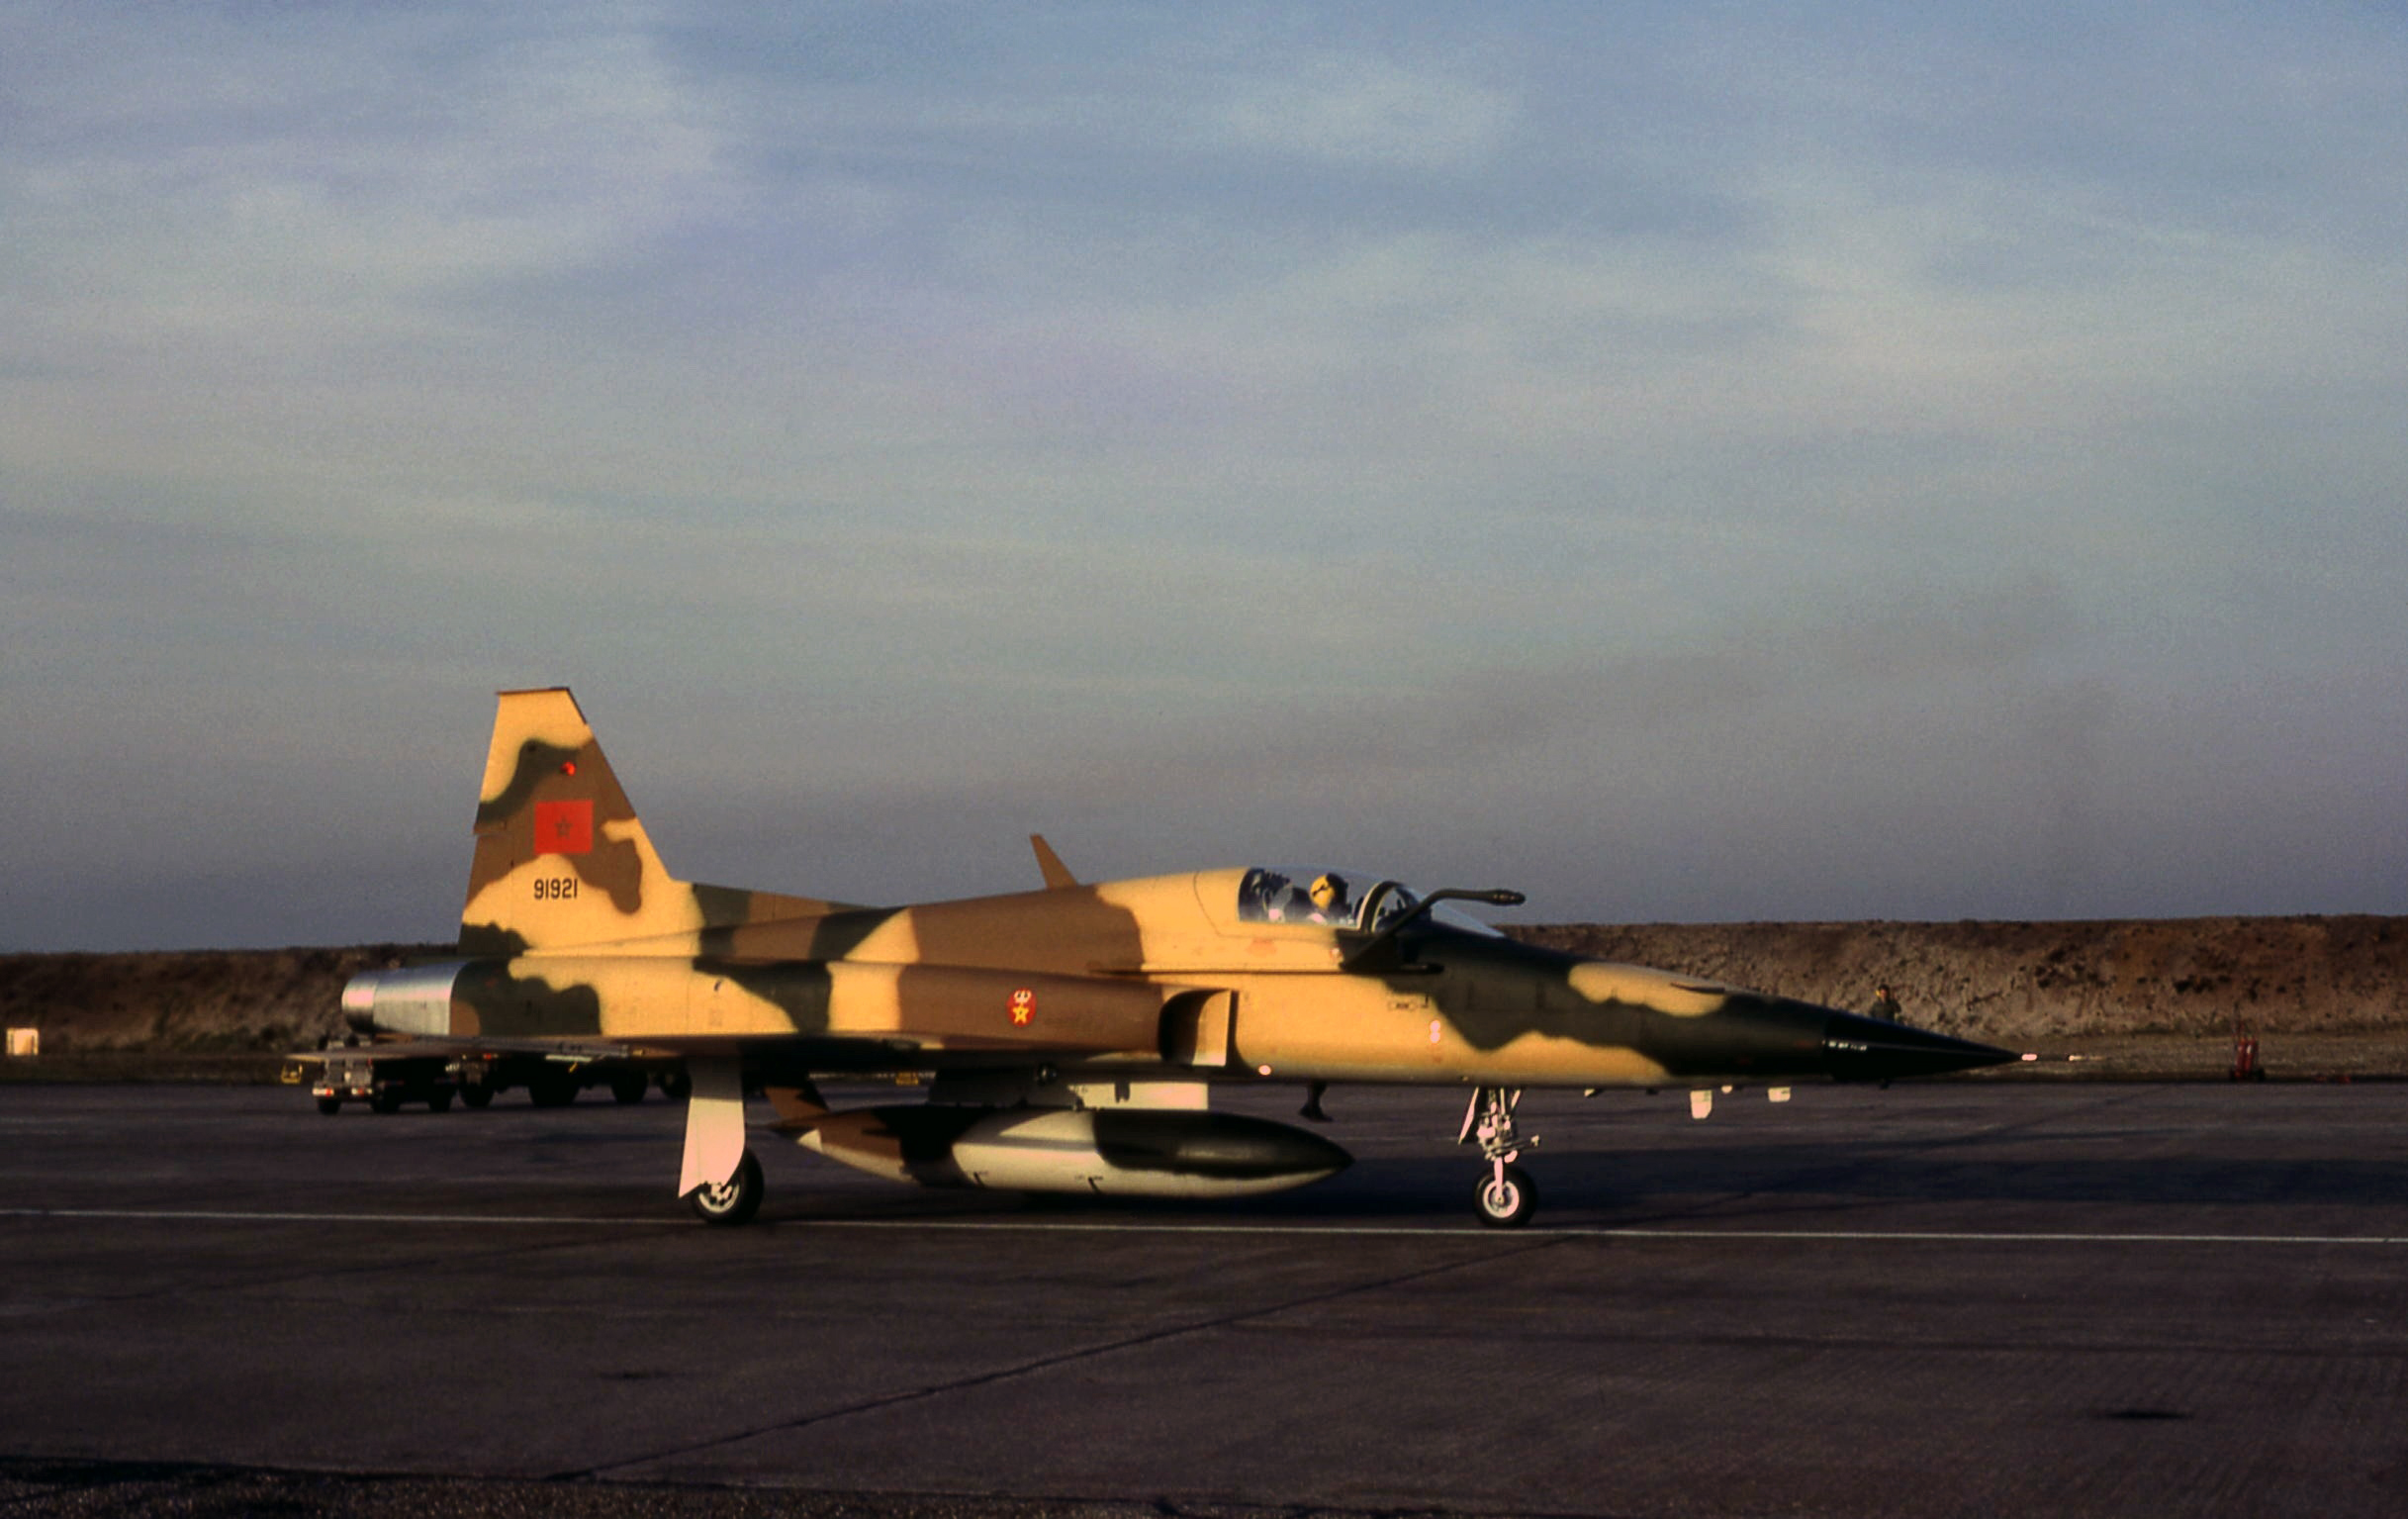 FRA: Photos F-5 marocains / Moroccan F-5  - Page 12 32906899818_272175ac05_o